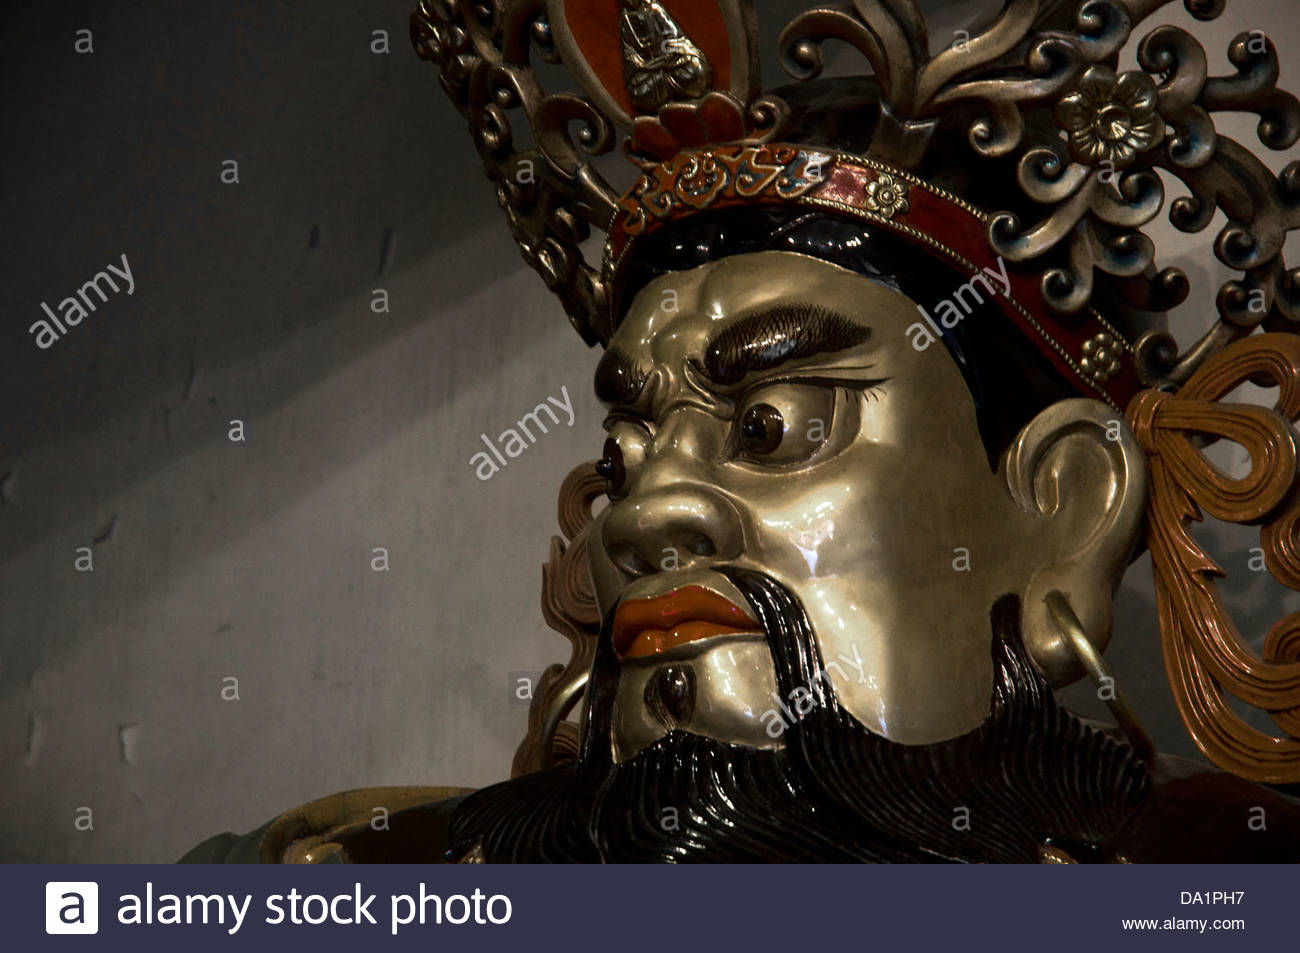 God statue in entrance to temple courtyard statues in the Po Lin Monastery - Stock Image